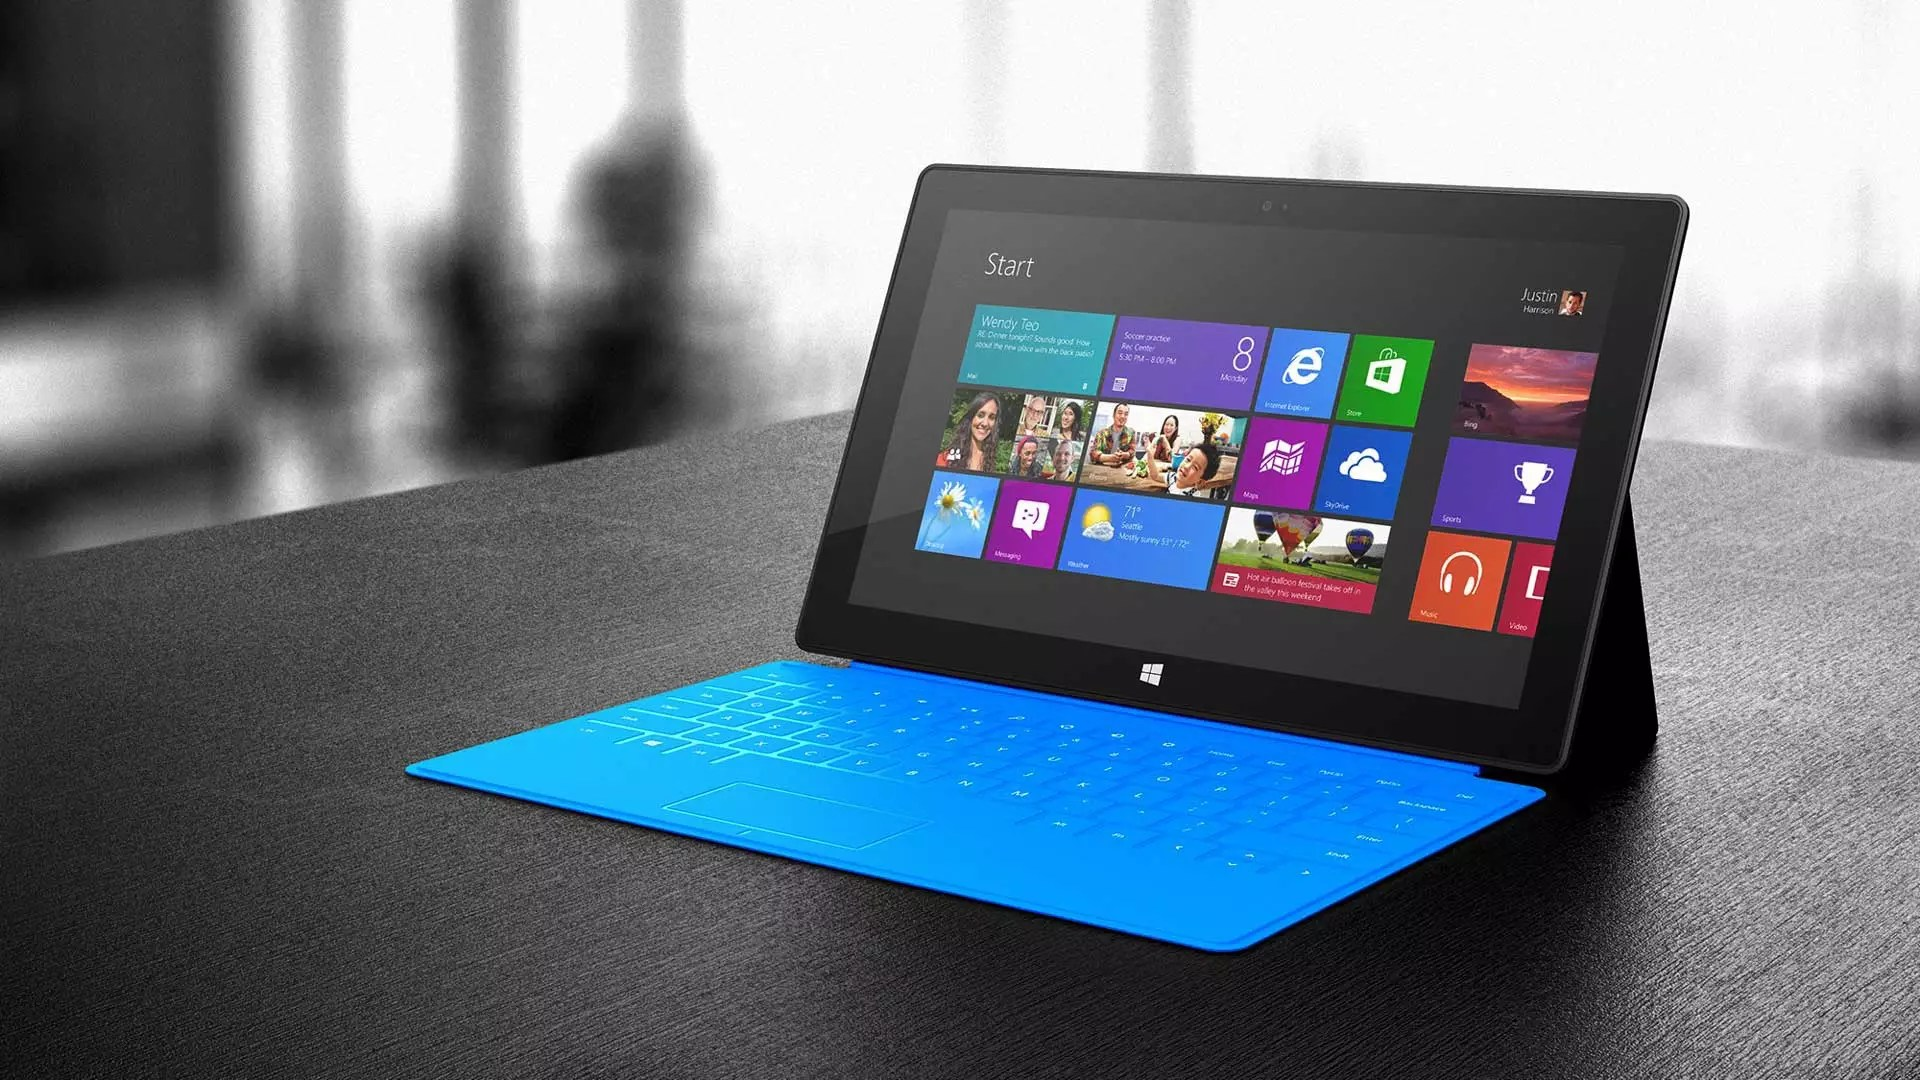 Microsoft Office Pour Tablette Windows 10 S N 39est Pas Un Nouveau Windows Rt Selon